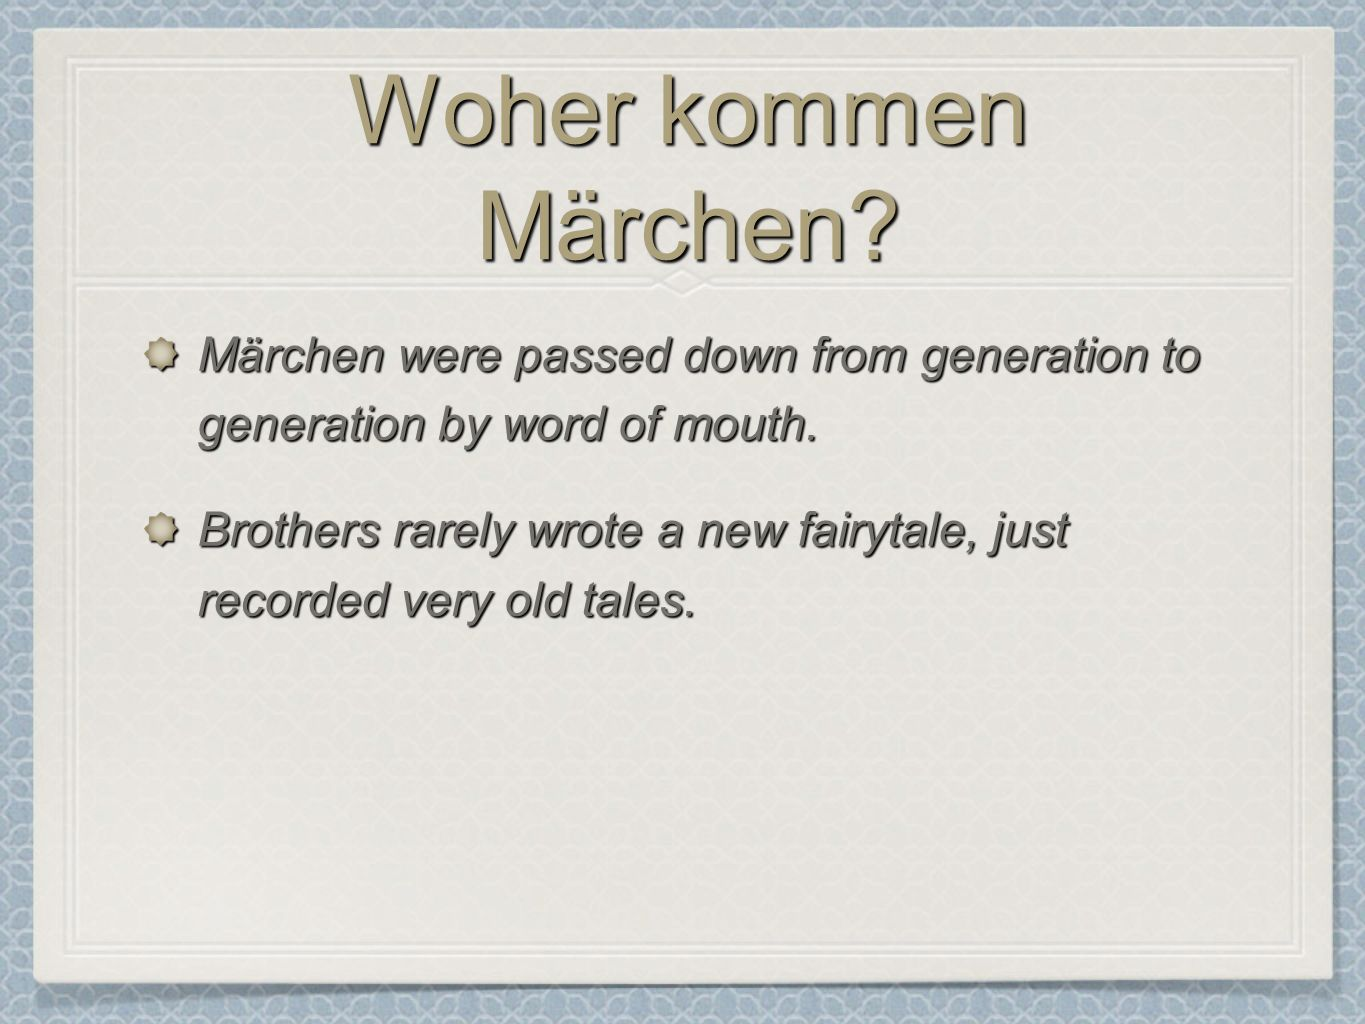 Woher kommen Märchen Märchen were passed down from generation to generation by word of mouth.